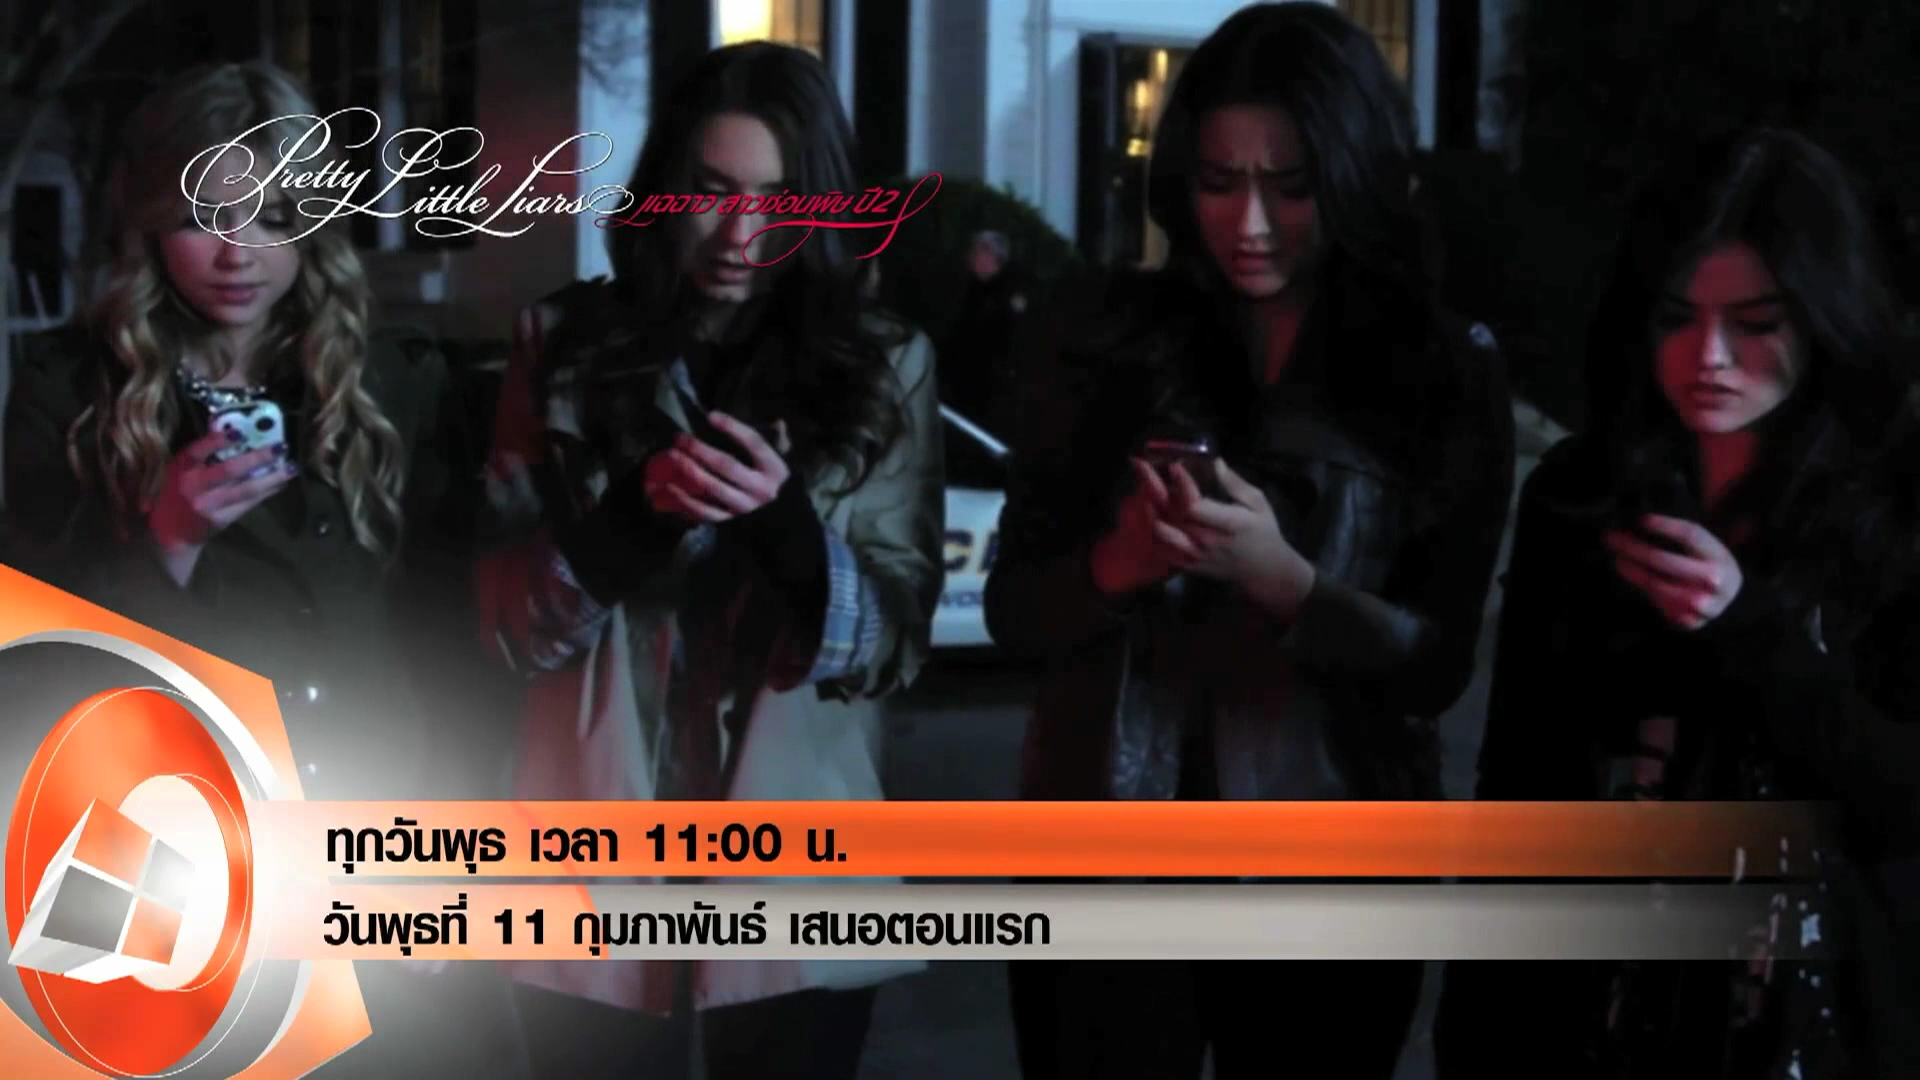 Promo_On580211(WED)_PrettyLittleLiars(S02)_(EP01-Firstrun)_0100.mp4_000017168